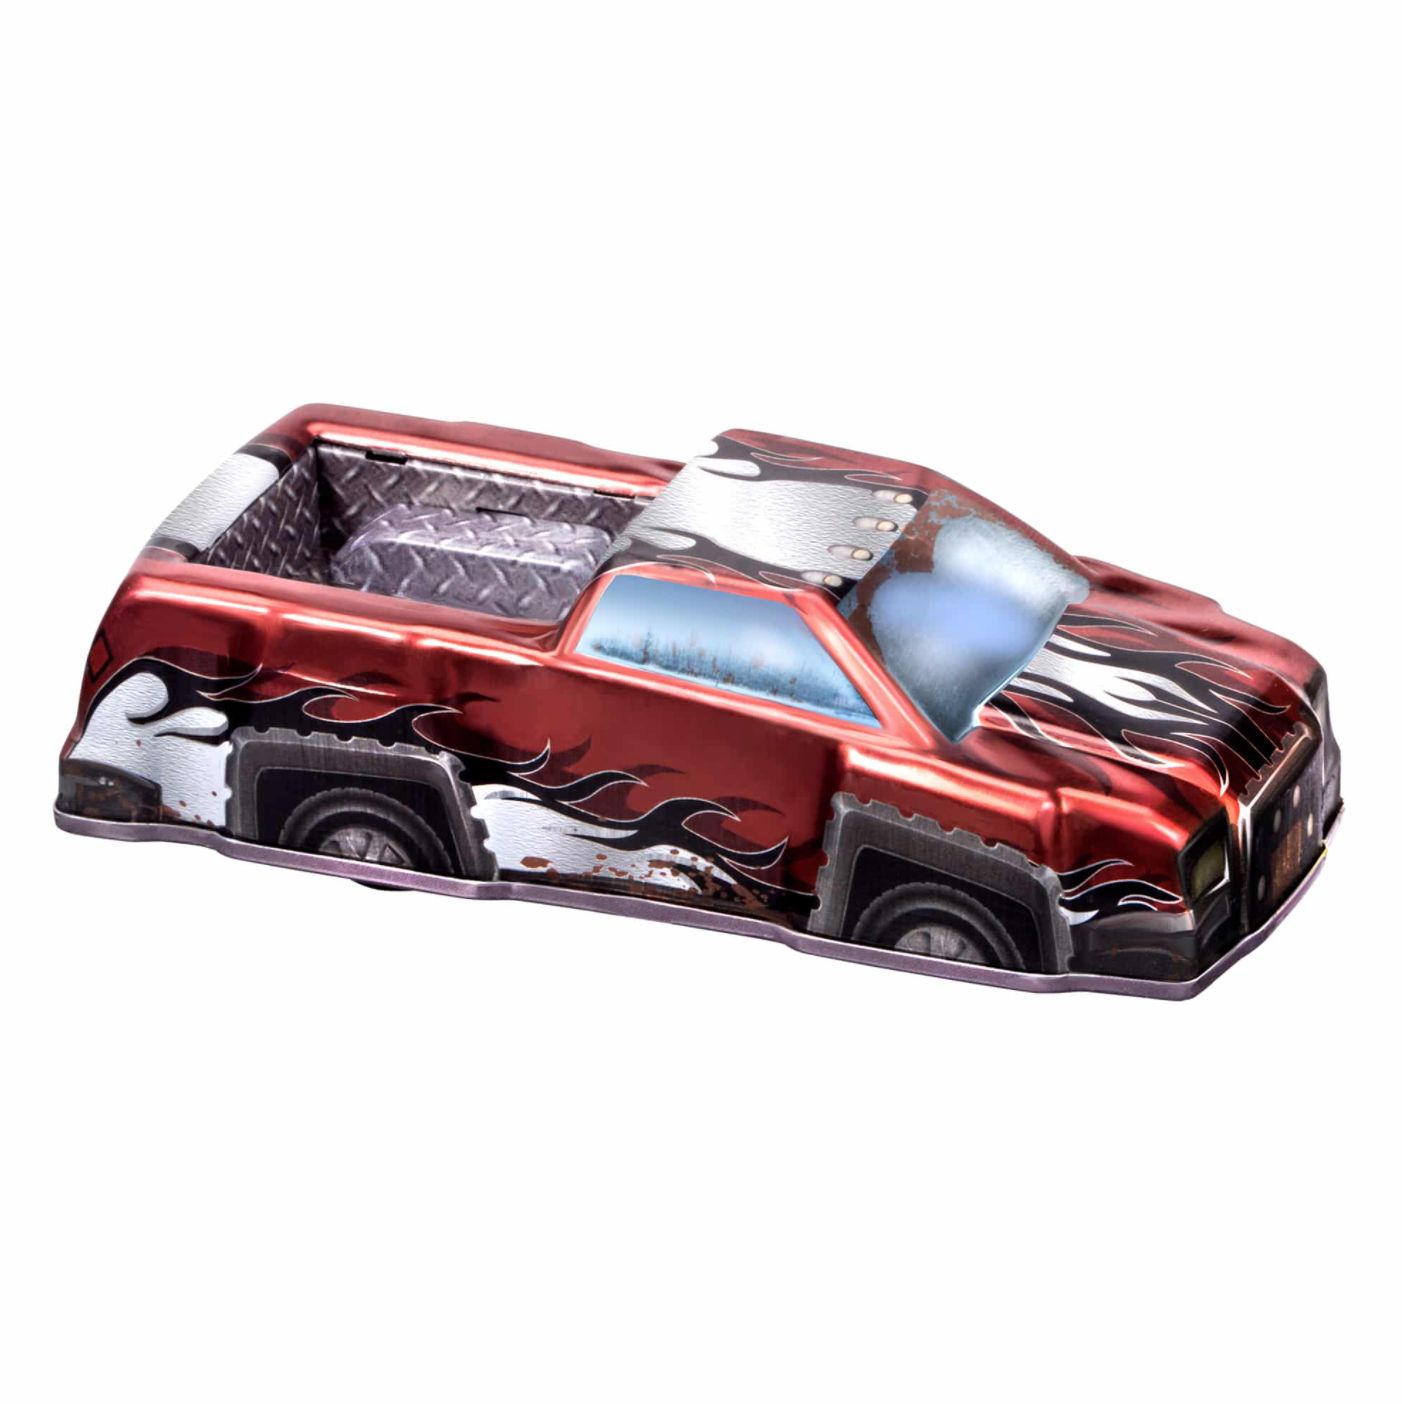 Rev-Up Racers Tin Trucks Fire Red